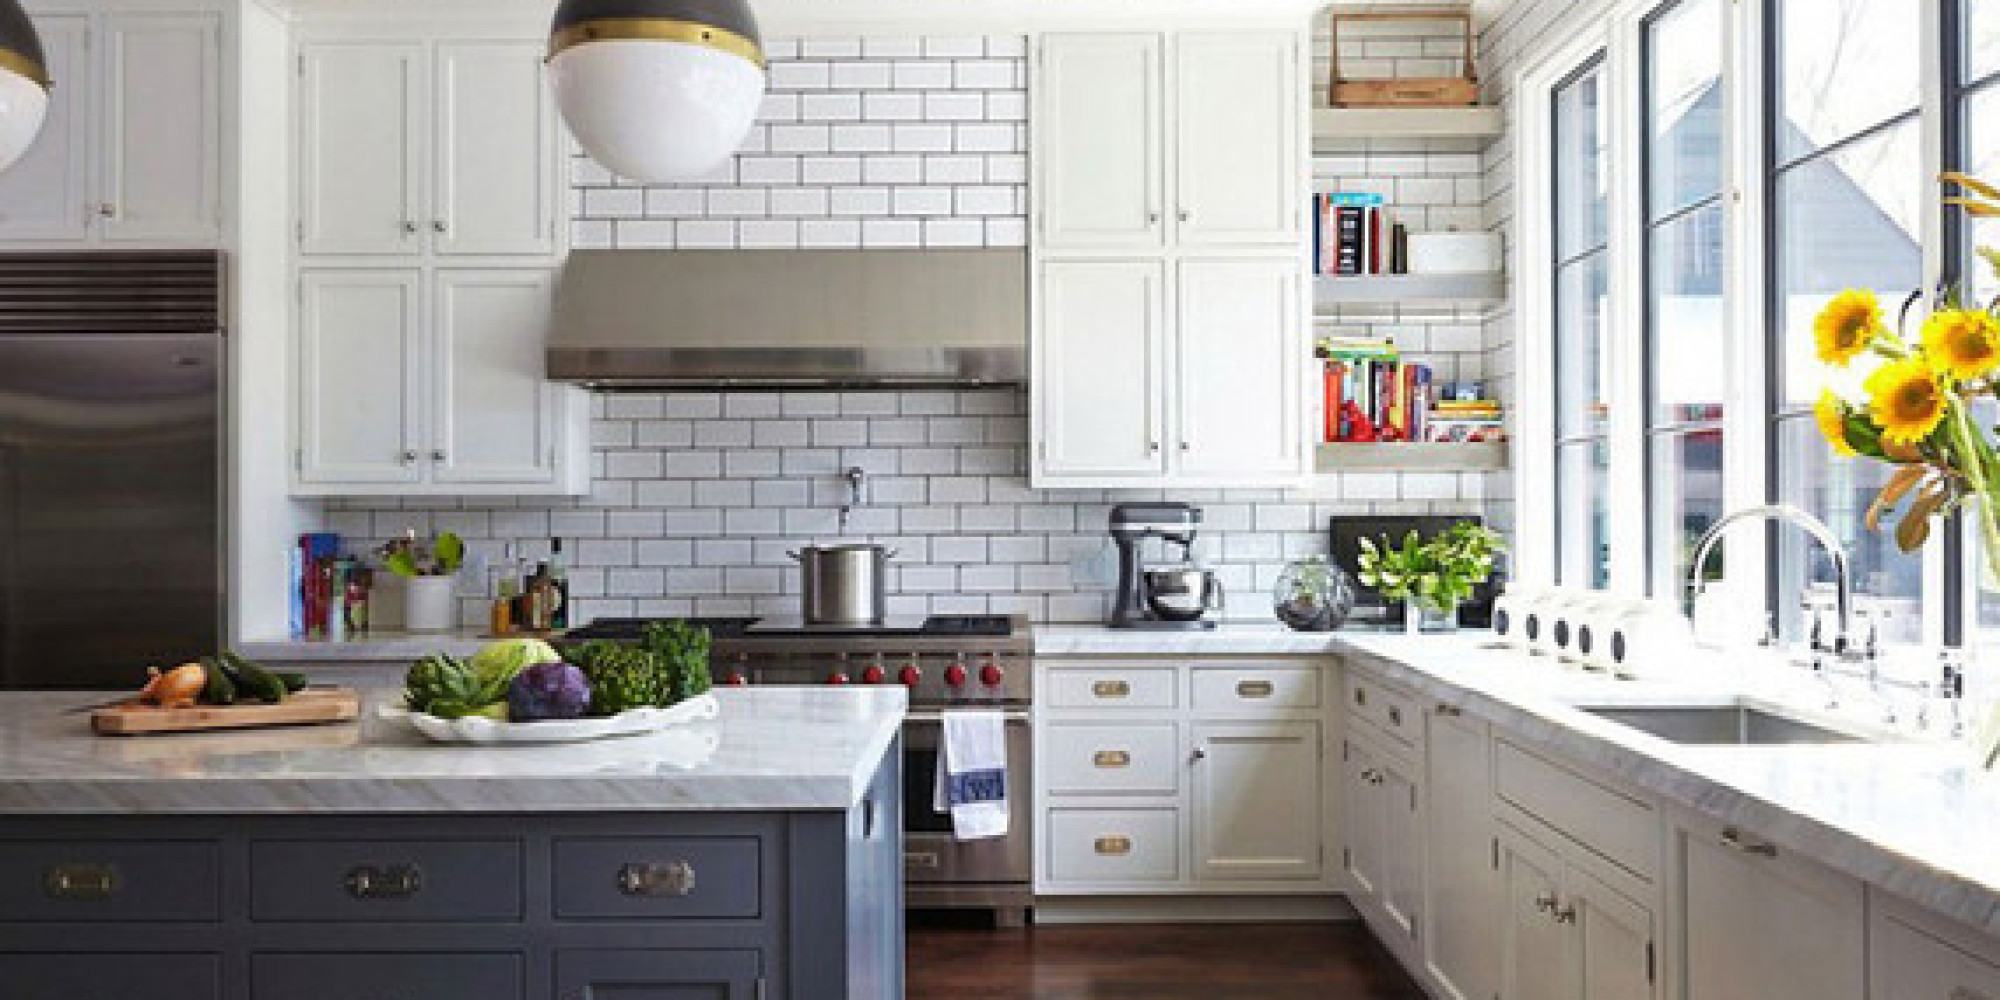 7 Of The Coolest Kitchens From Around The World | HuffPost